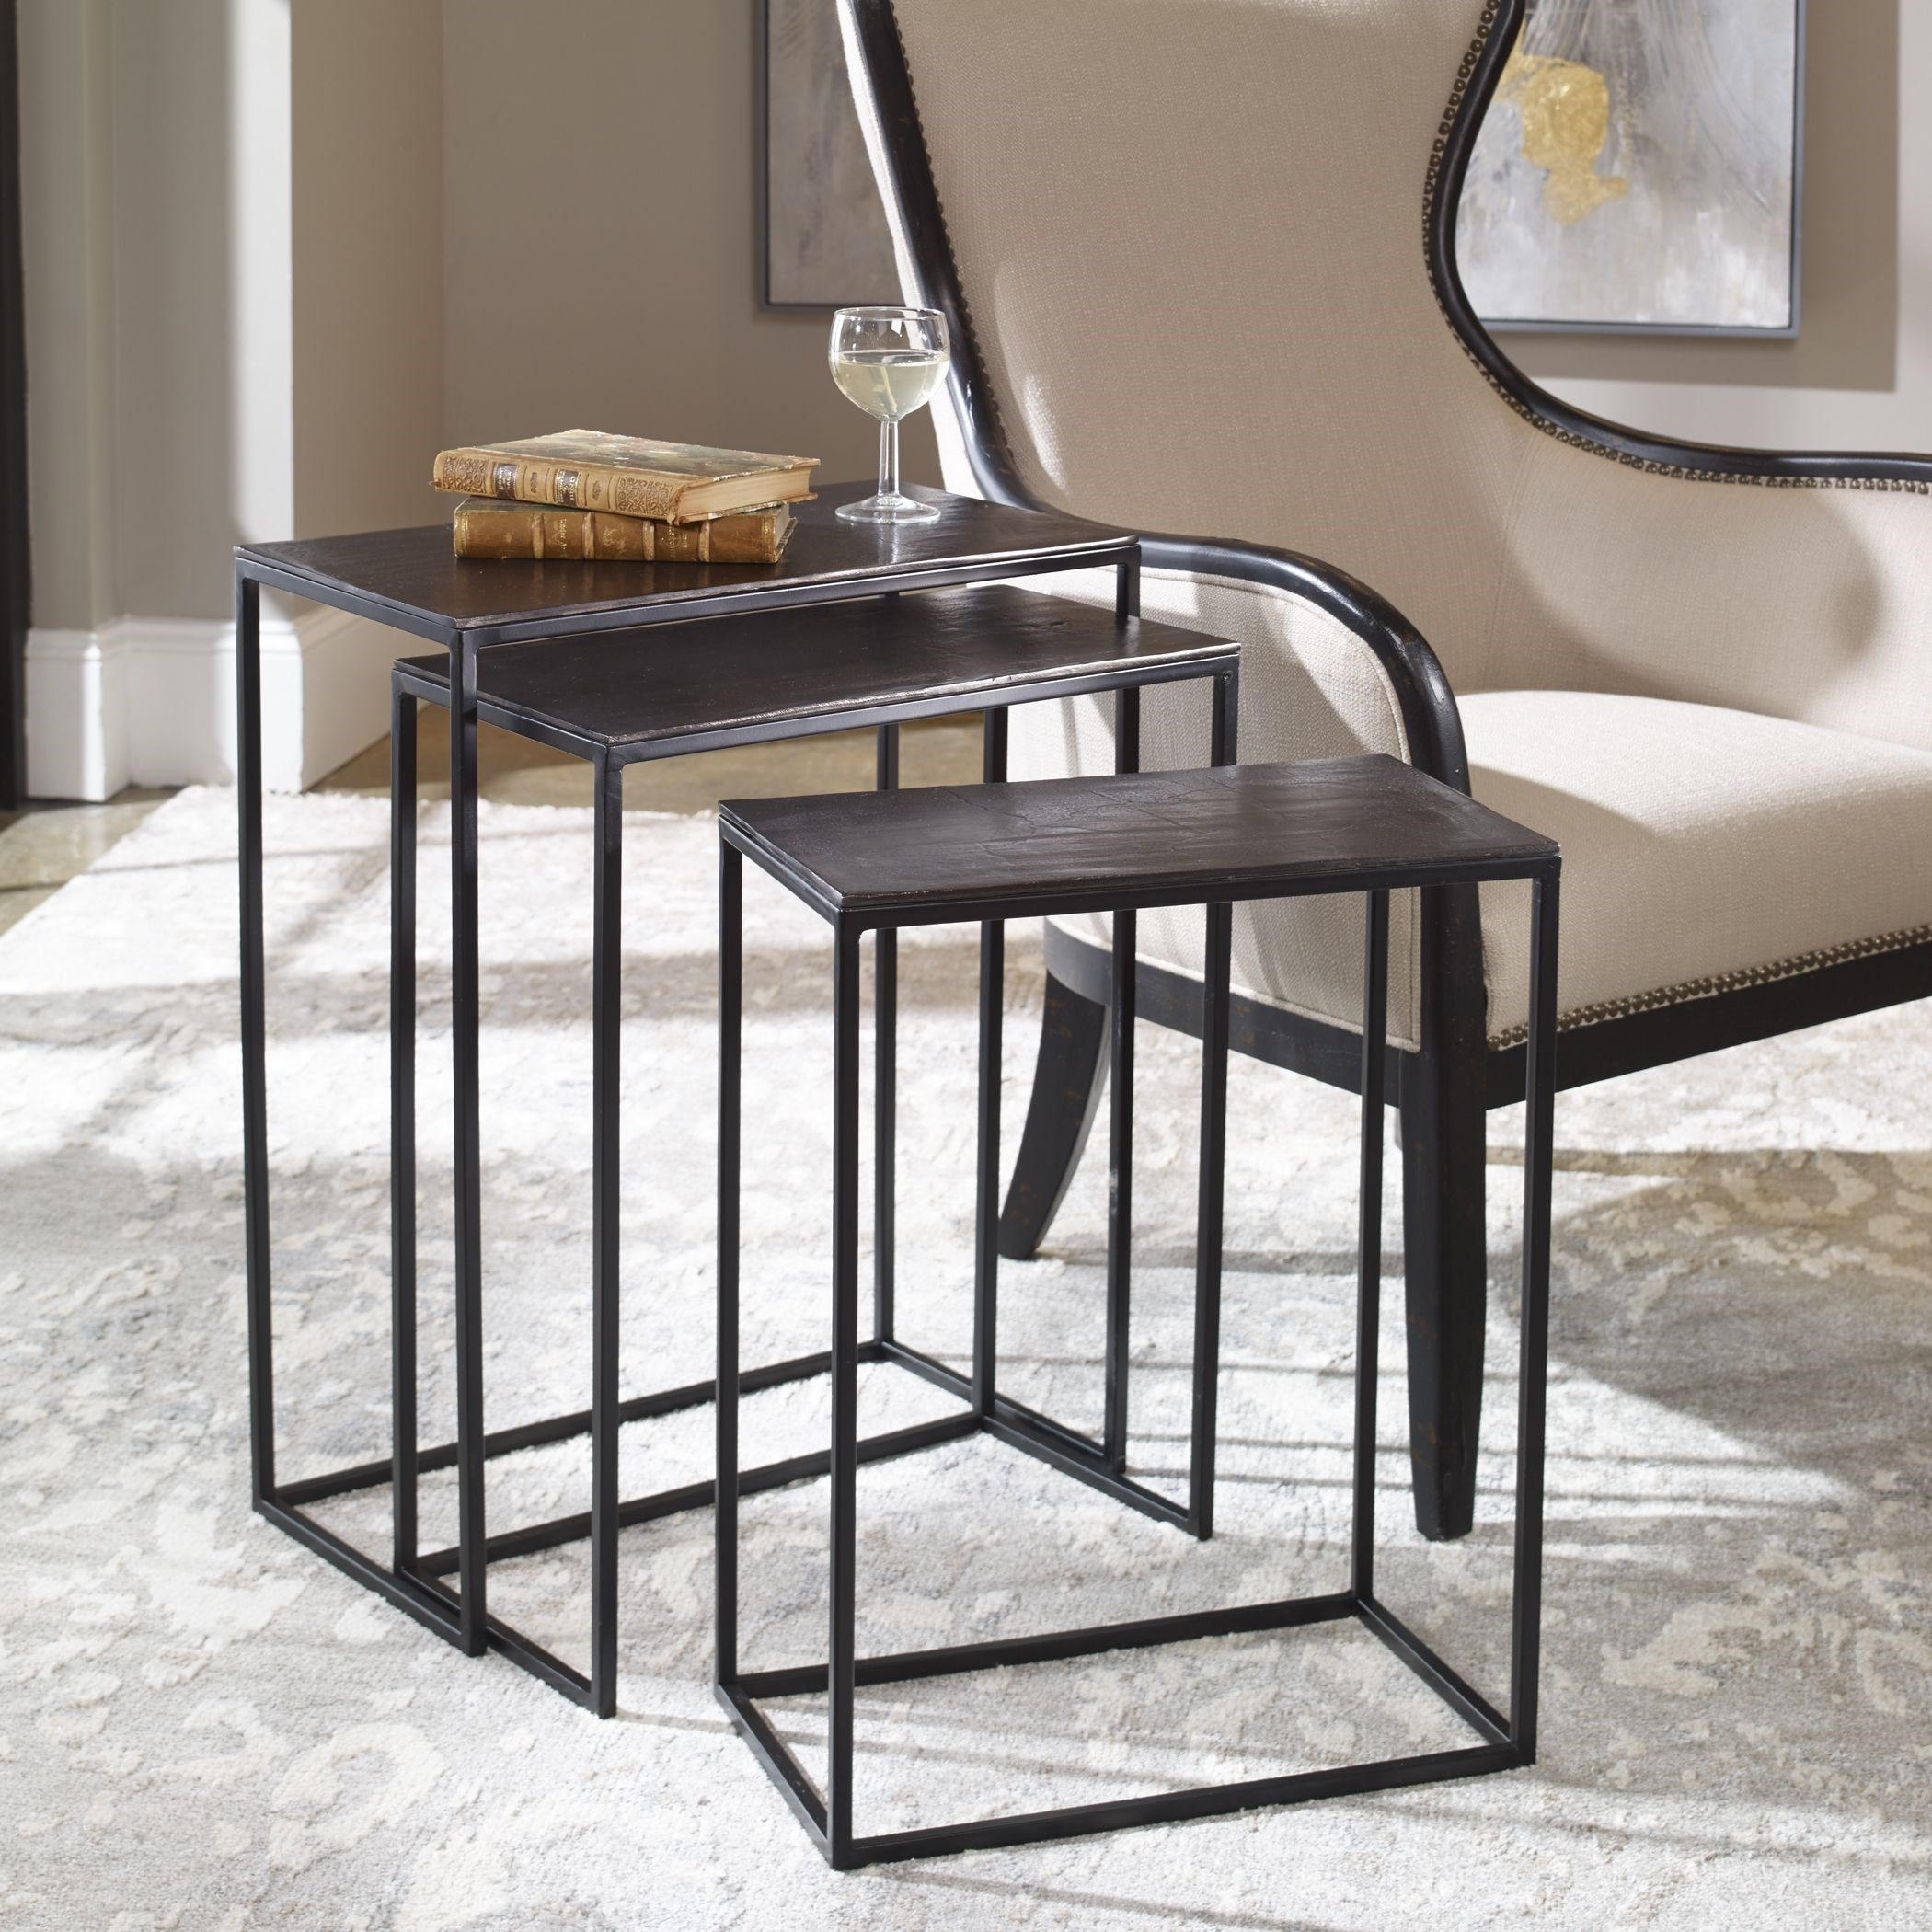 Accent Furniture - Occasional Tables Coreene Iron Nesting Tables S/3 by Uttermost at Suburban Furniture